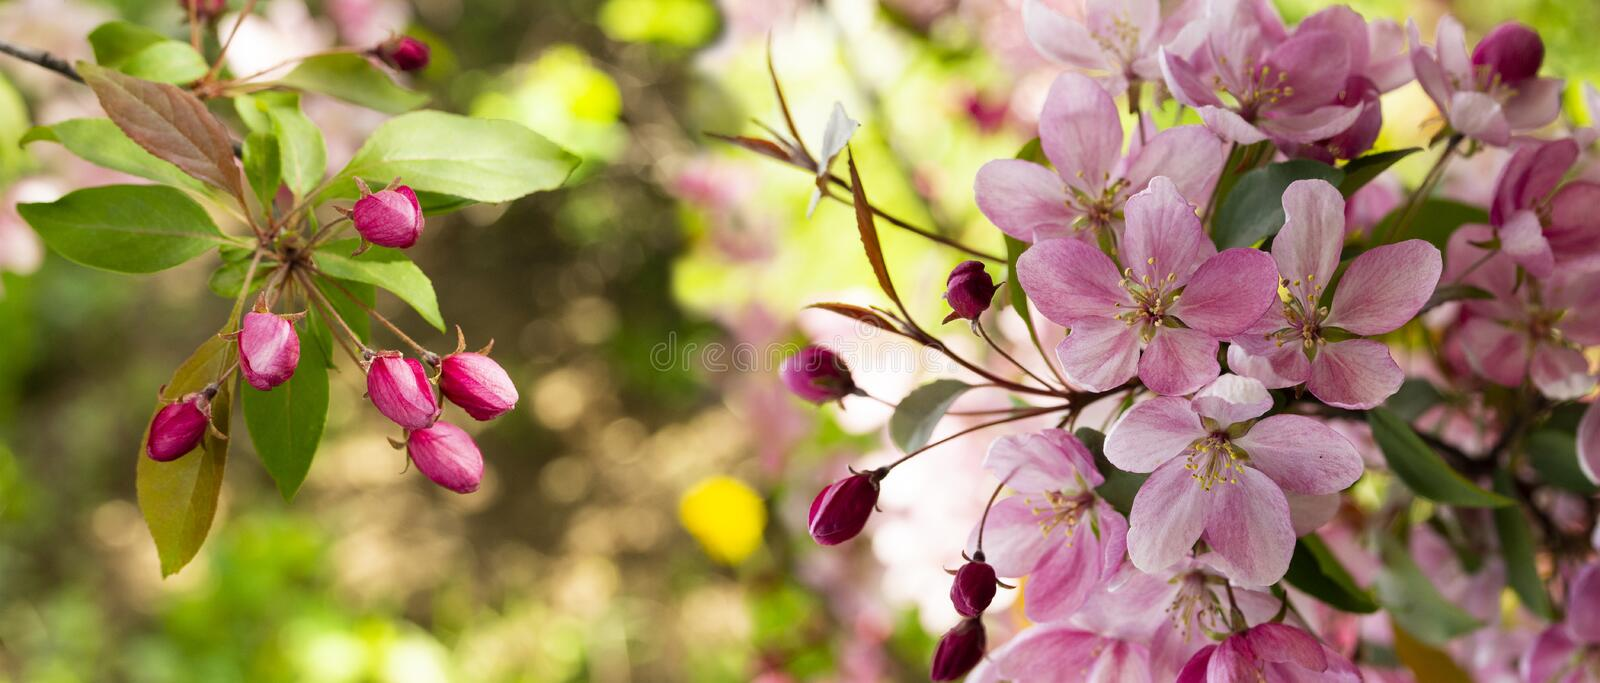 Panorama of a blooming apple tree with pink crab flowers and unopened buds. Background wallpaper banner header site stock photo